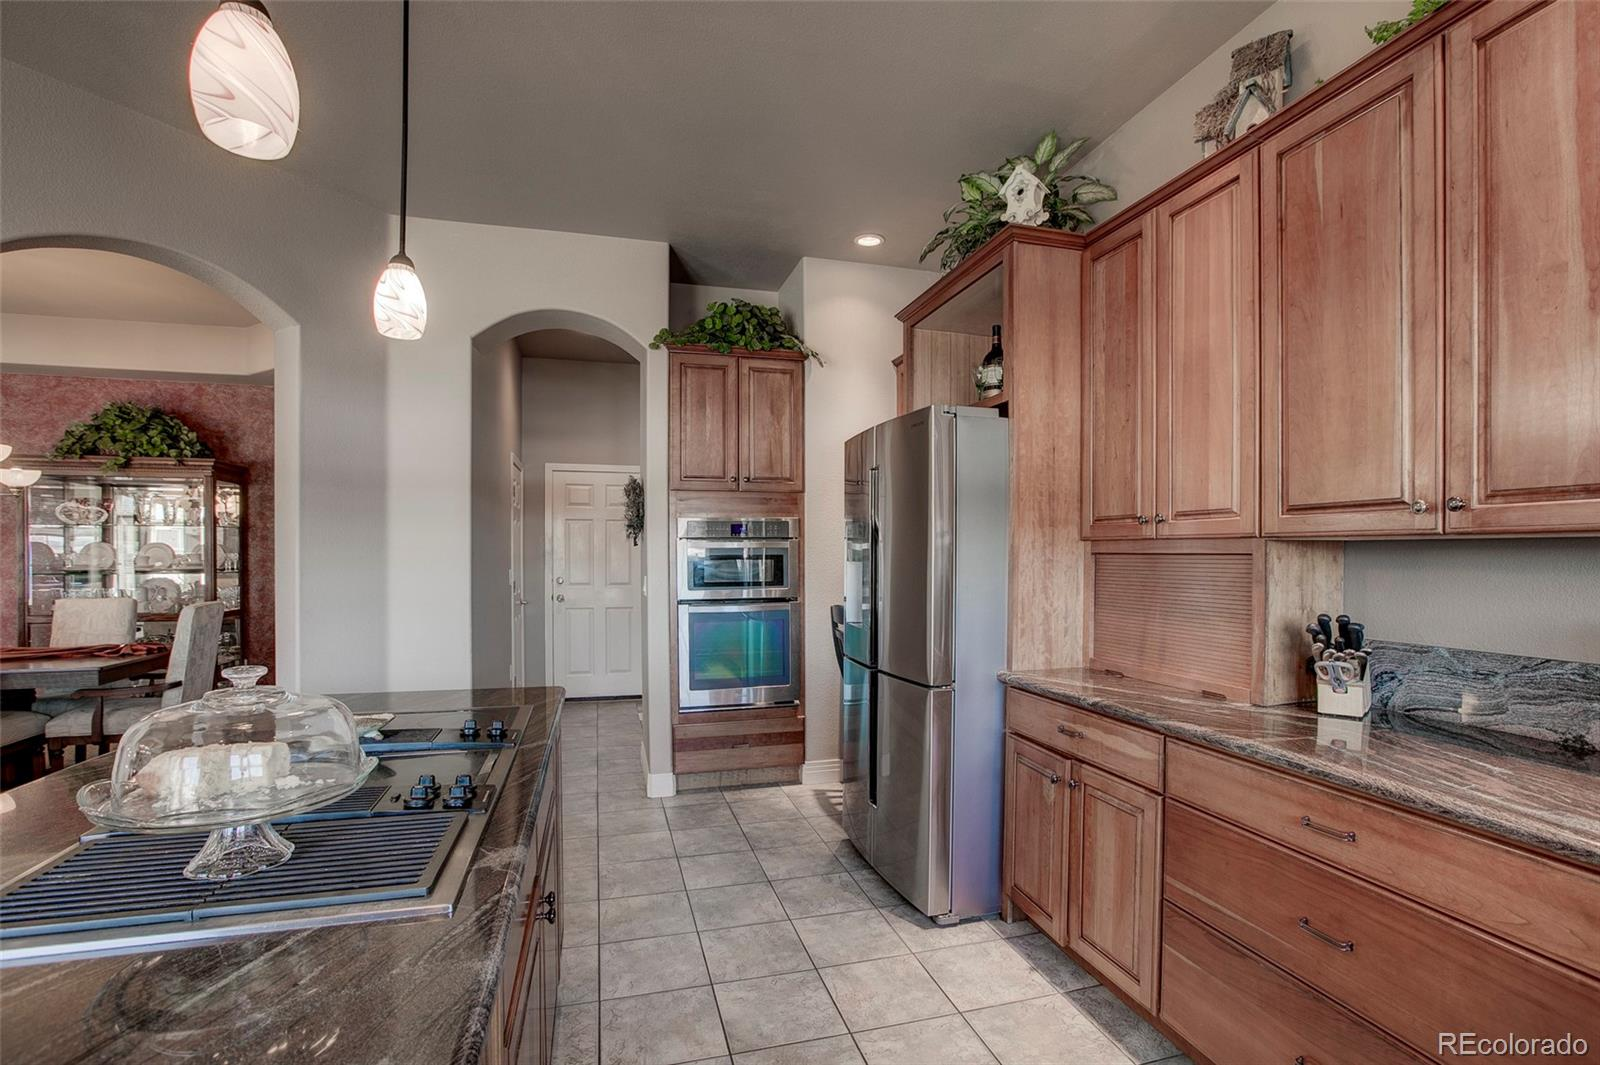 MLS# 7126152 - 18 - 5816 W Conservation Drive, Frederick, CO 80504